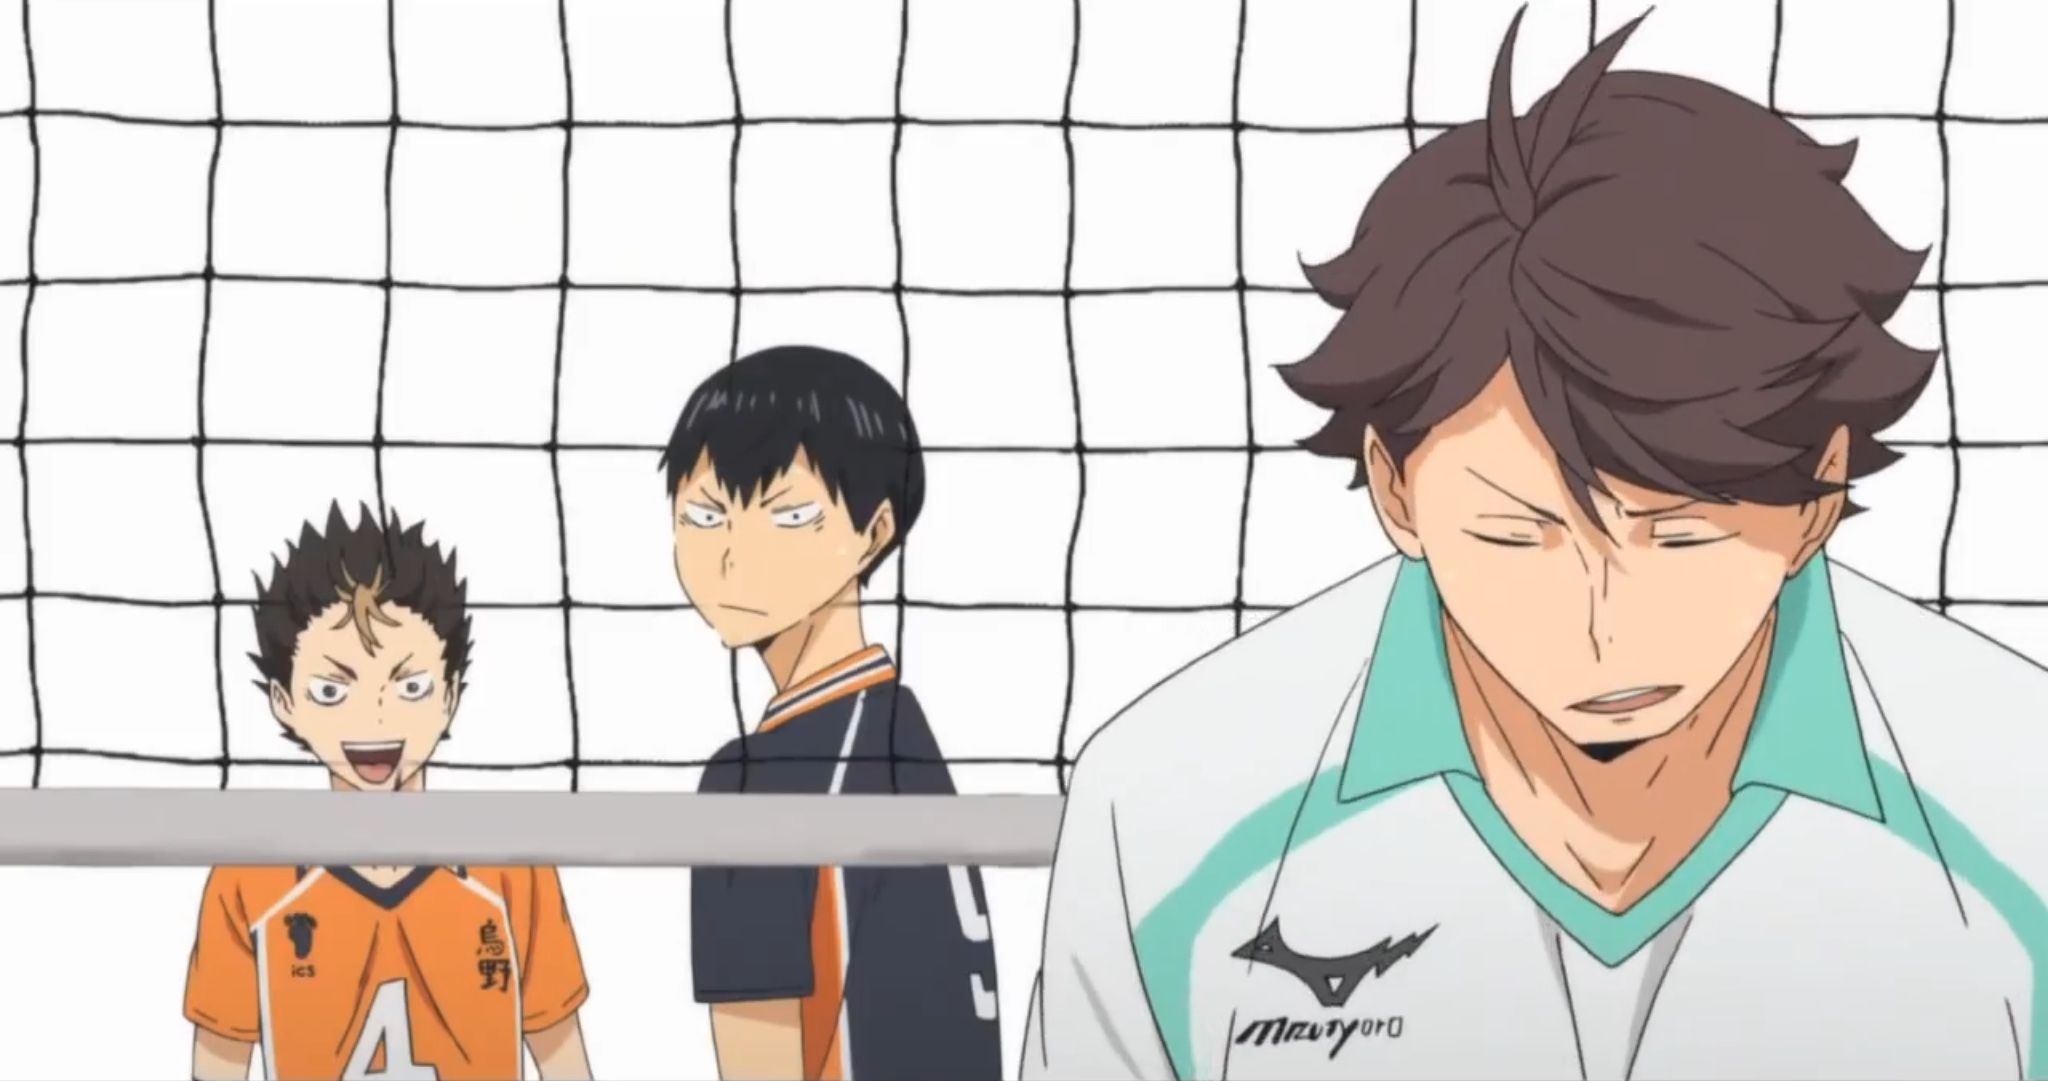 Pin by Yunnie Vang on Haikyuu Haikyuu, Anime, Kuroo